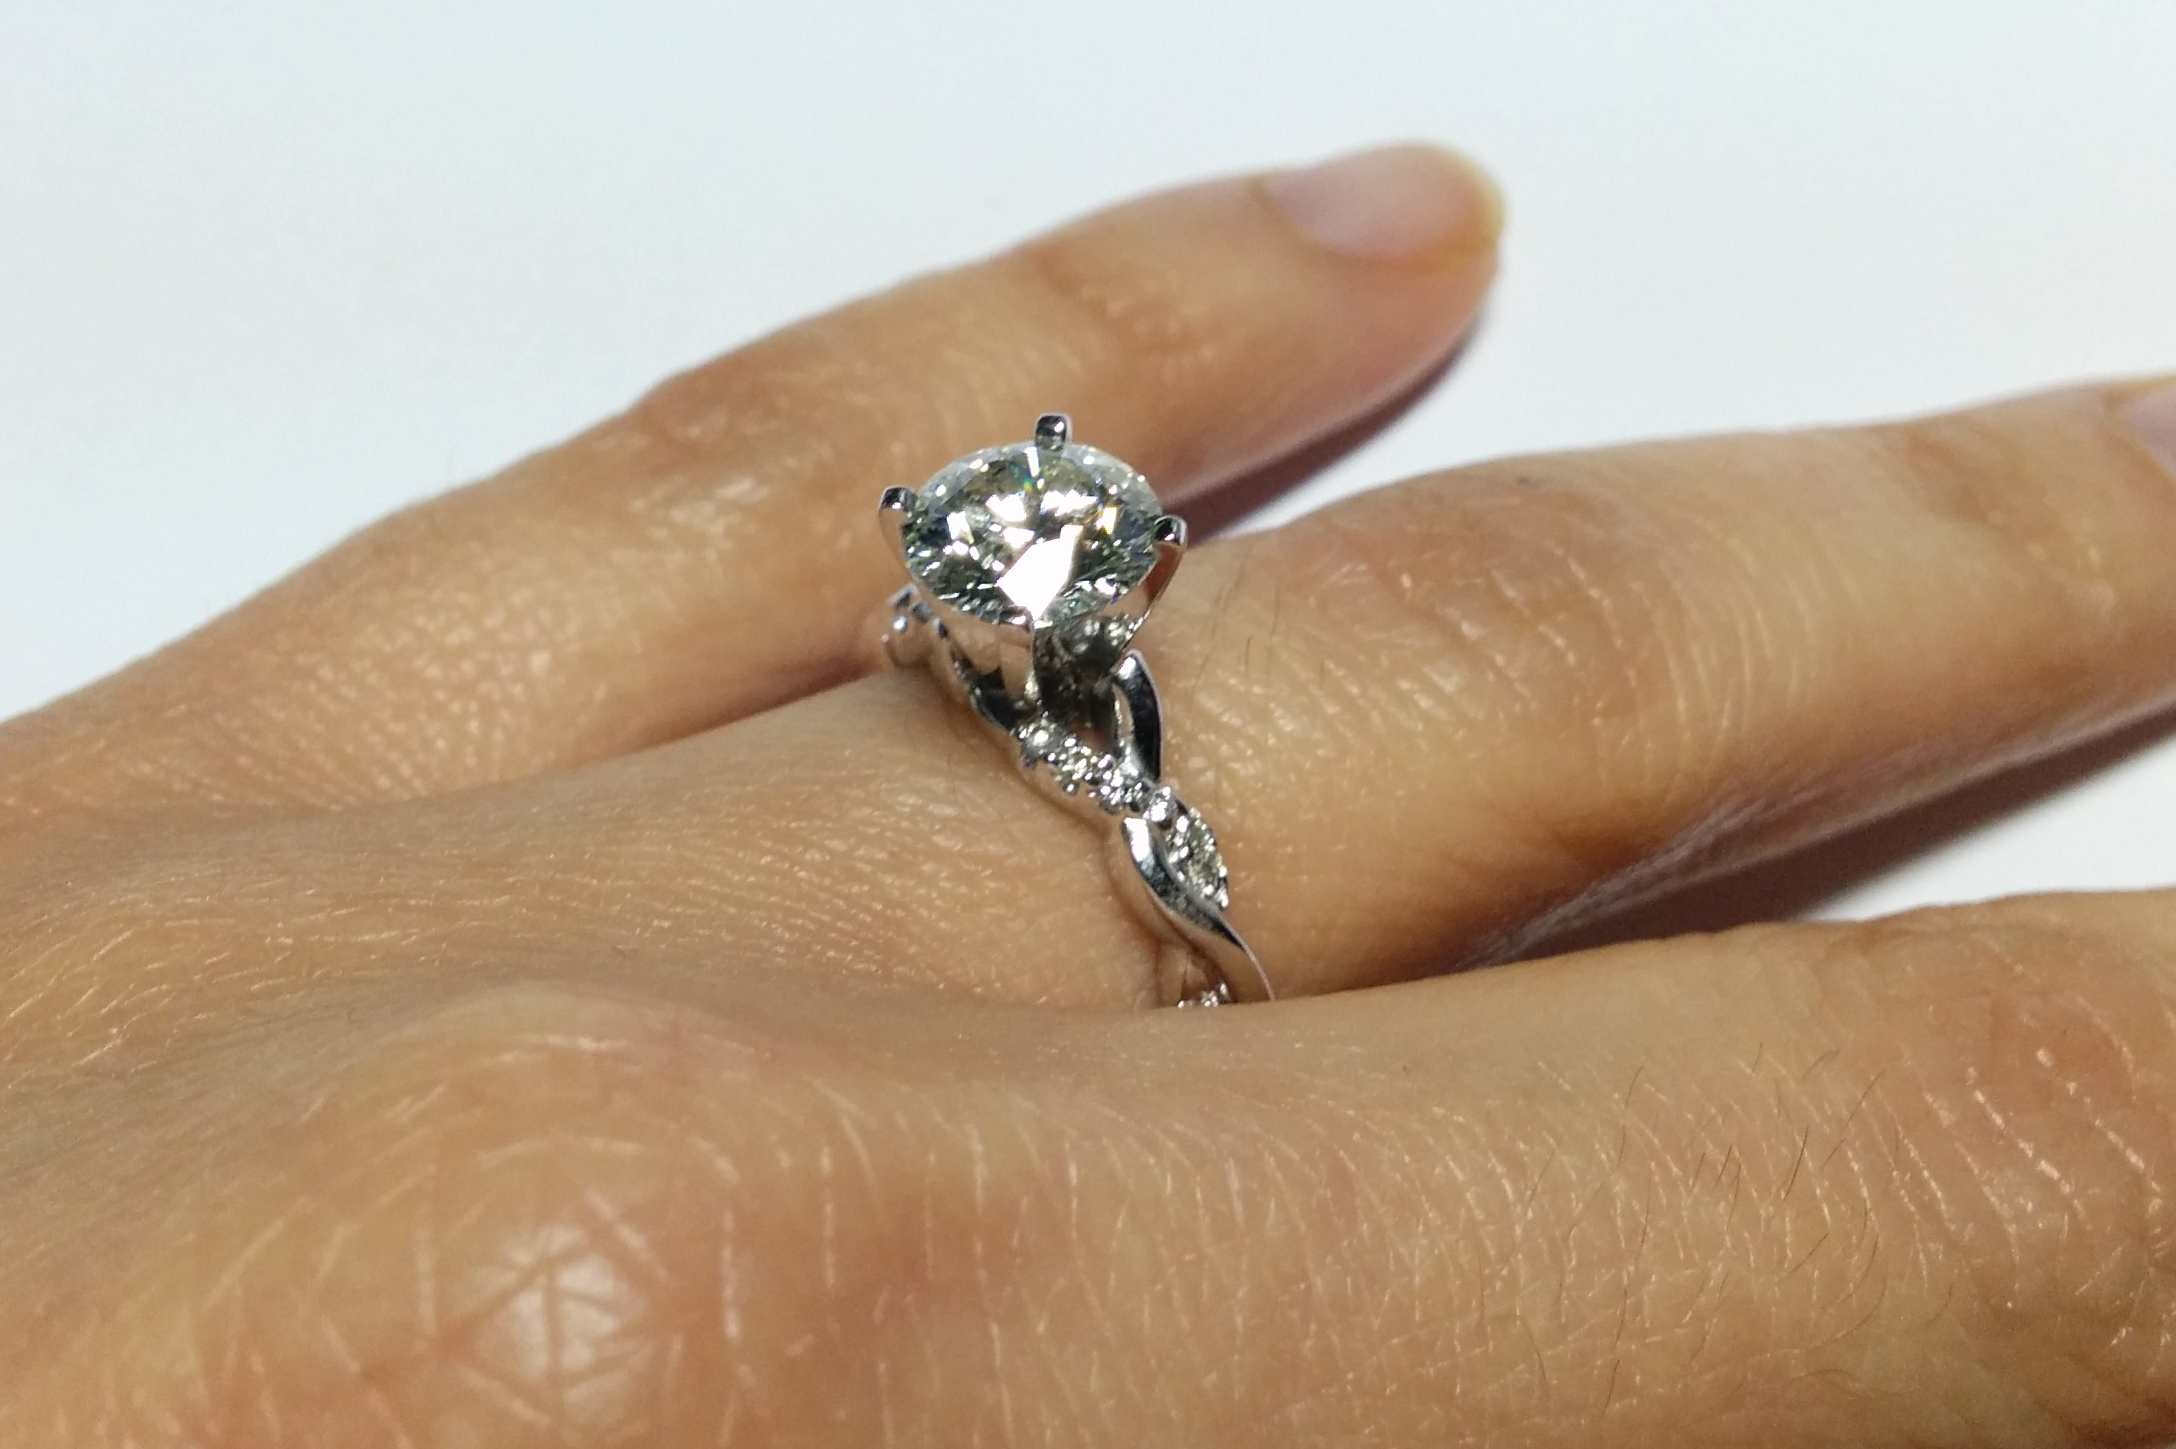 white products twist smithworks wedding engagement dsc gold ring infinity diamond twisted band sutton